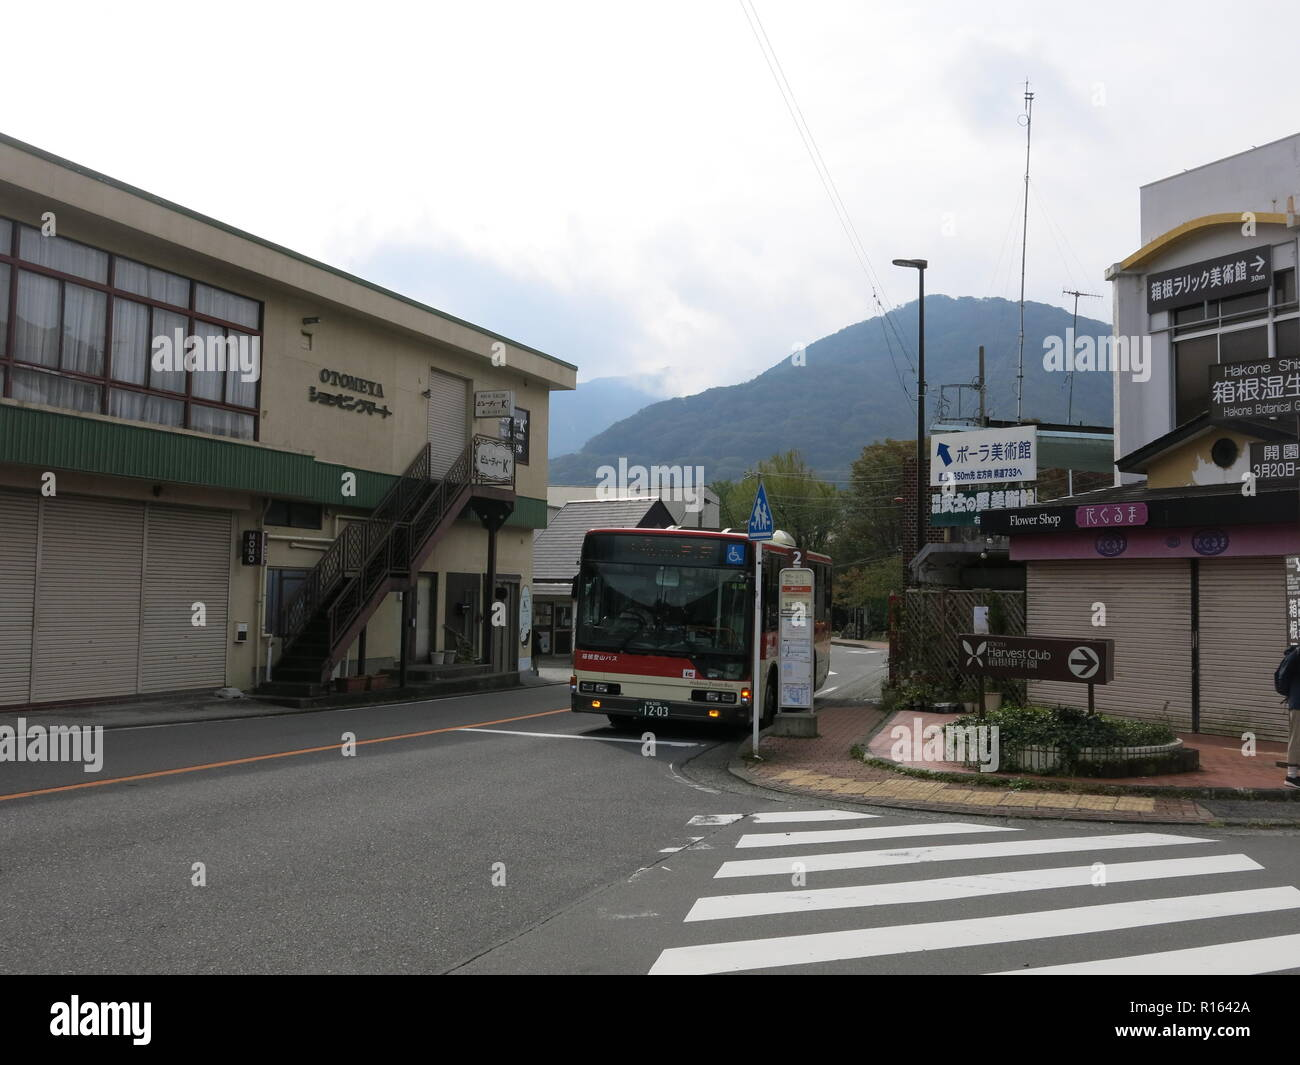 Street scene with a pedestrian crossing and bus standing at bus-stop number 2 in Hakone-machi, Kanagawa Prefecture, rural Japan. - Stock Image